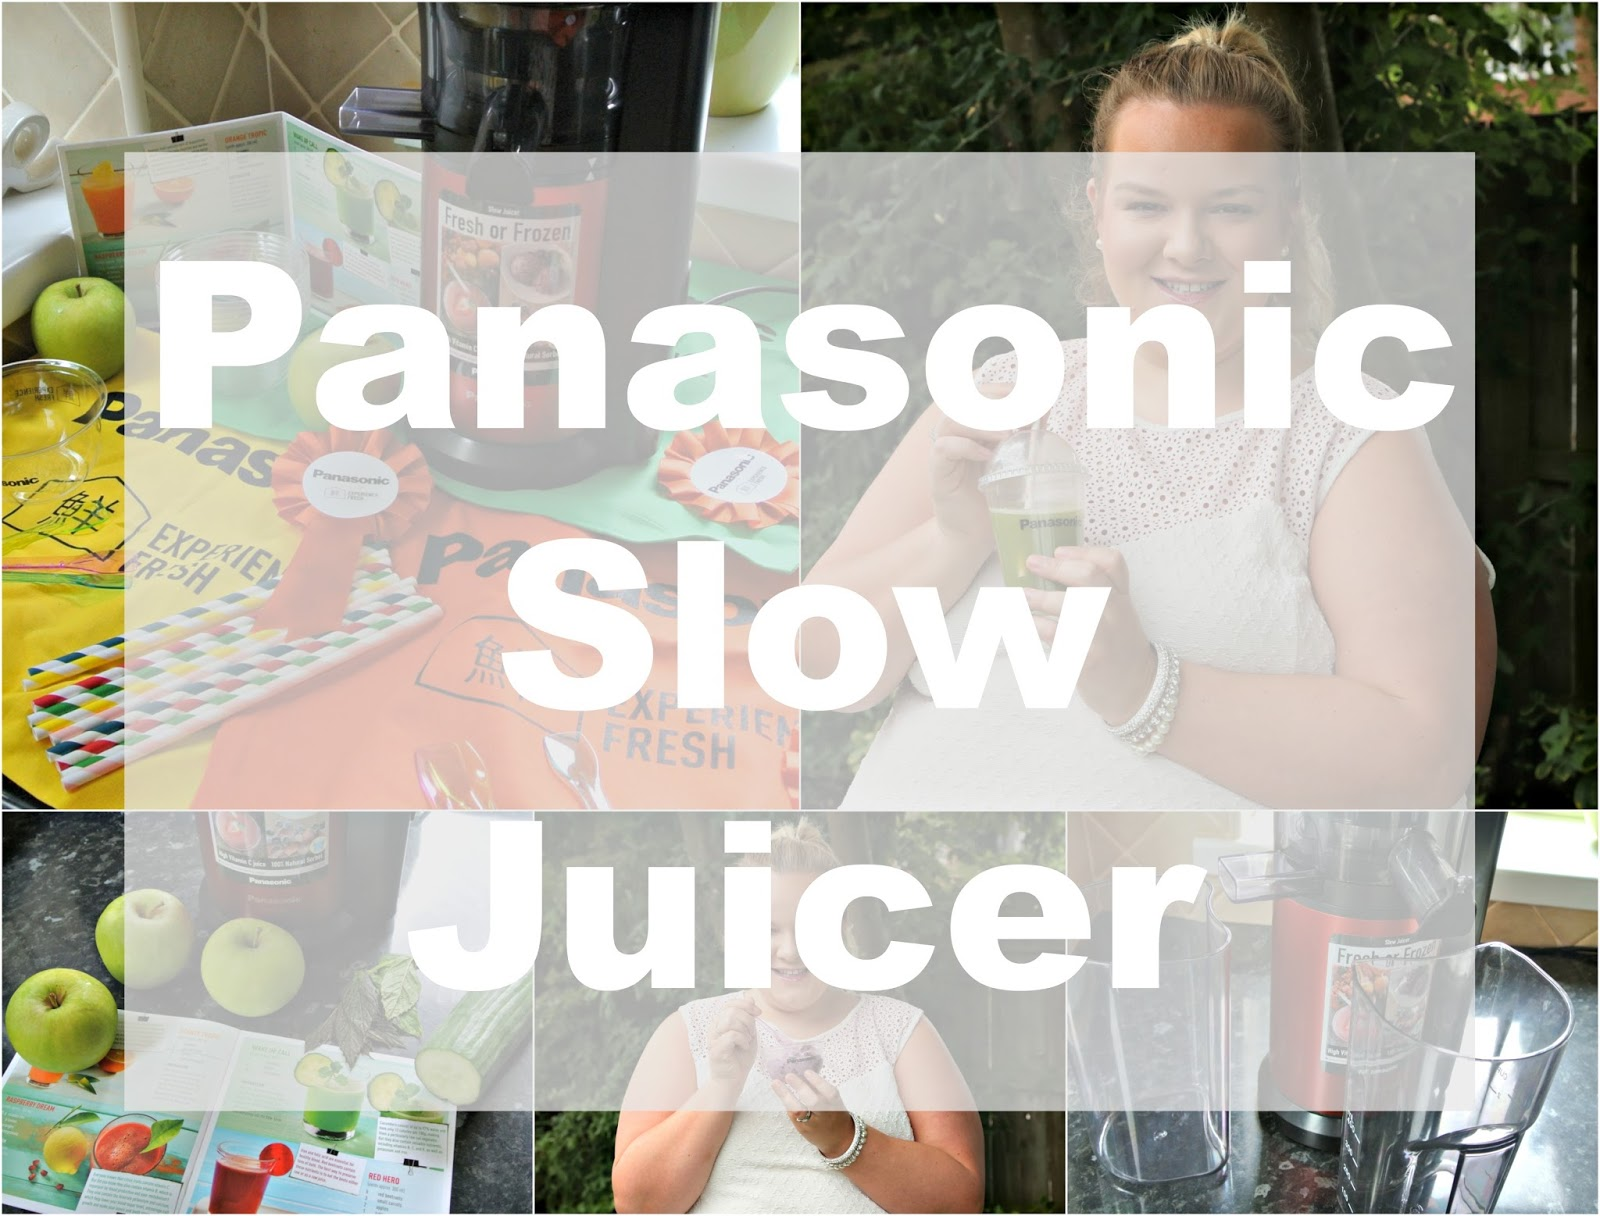 Panasonic Slow Juicer MJ-L500 Review Juicing Healthy Frozen Dessert Amazon